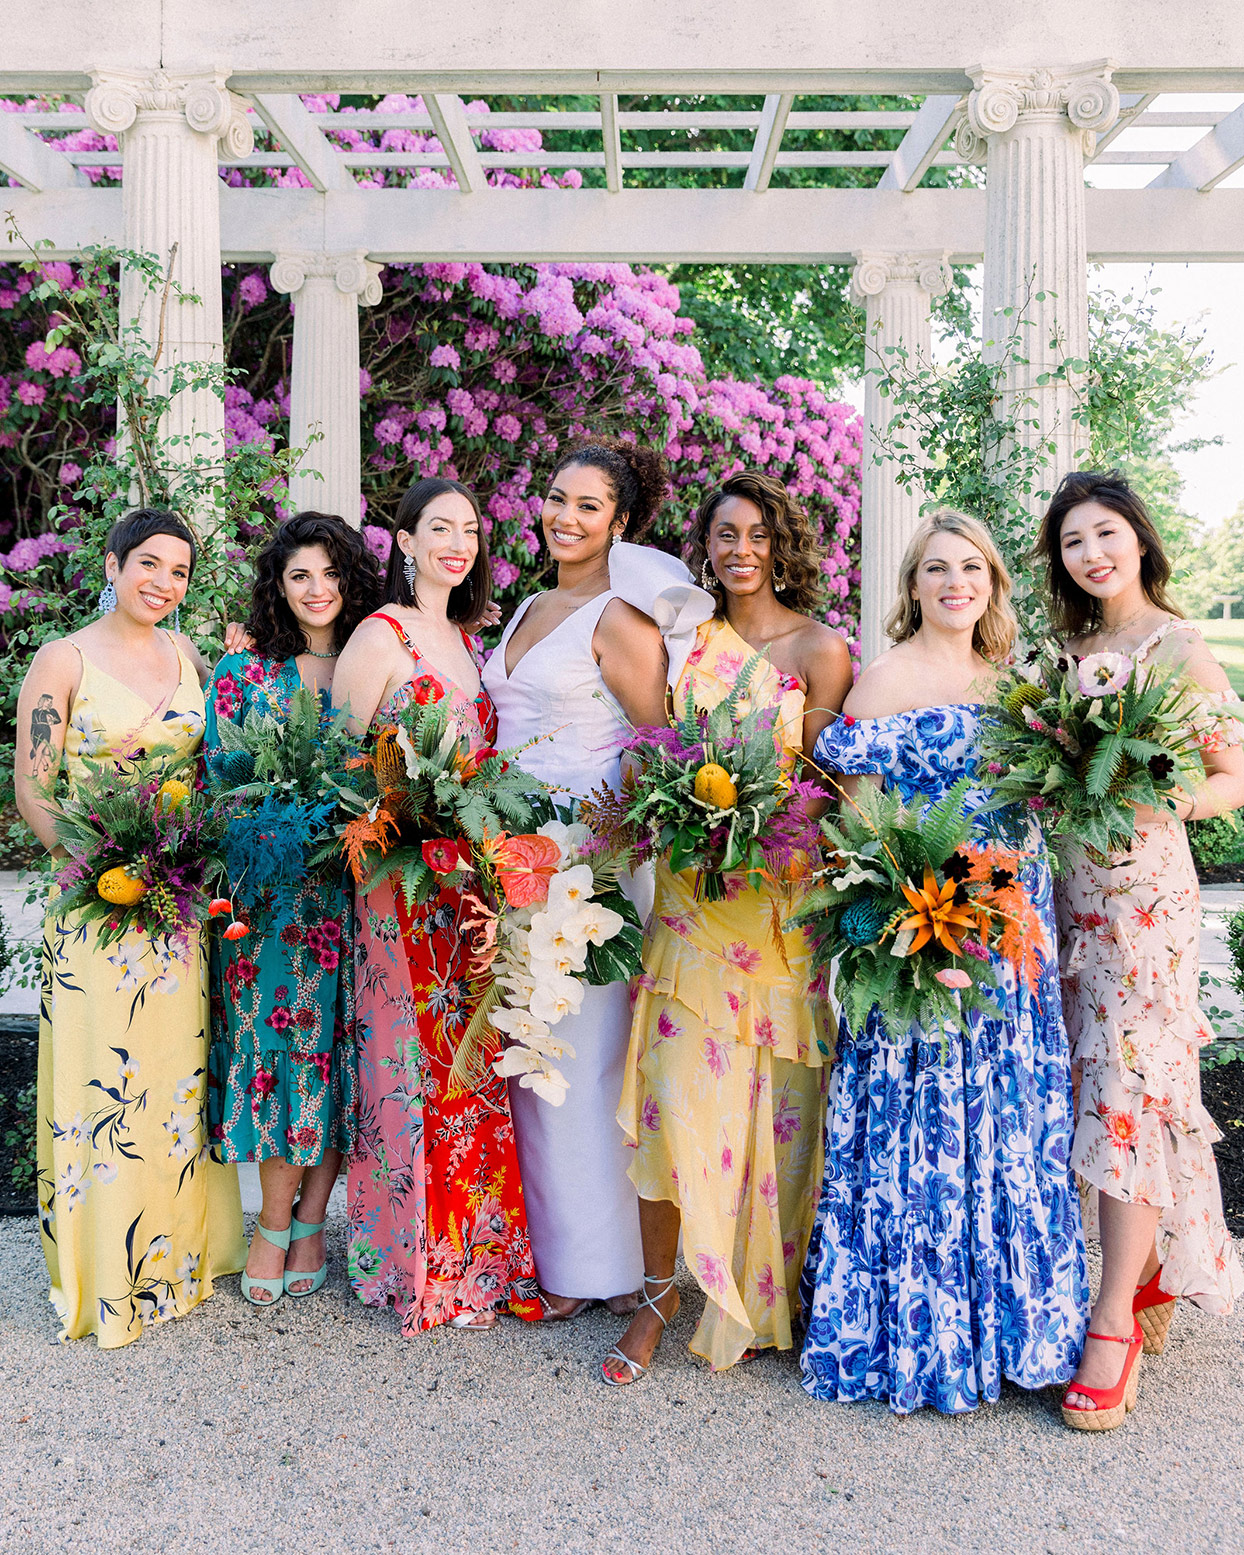 dalila elliot wedding bridesmaids in floral patterns